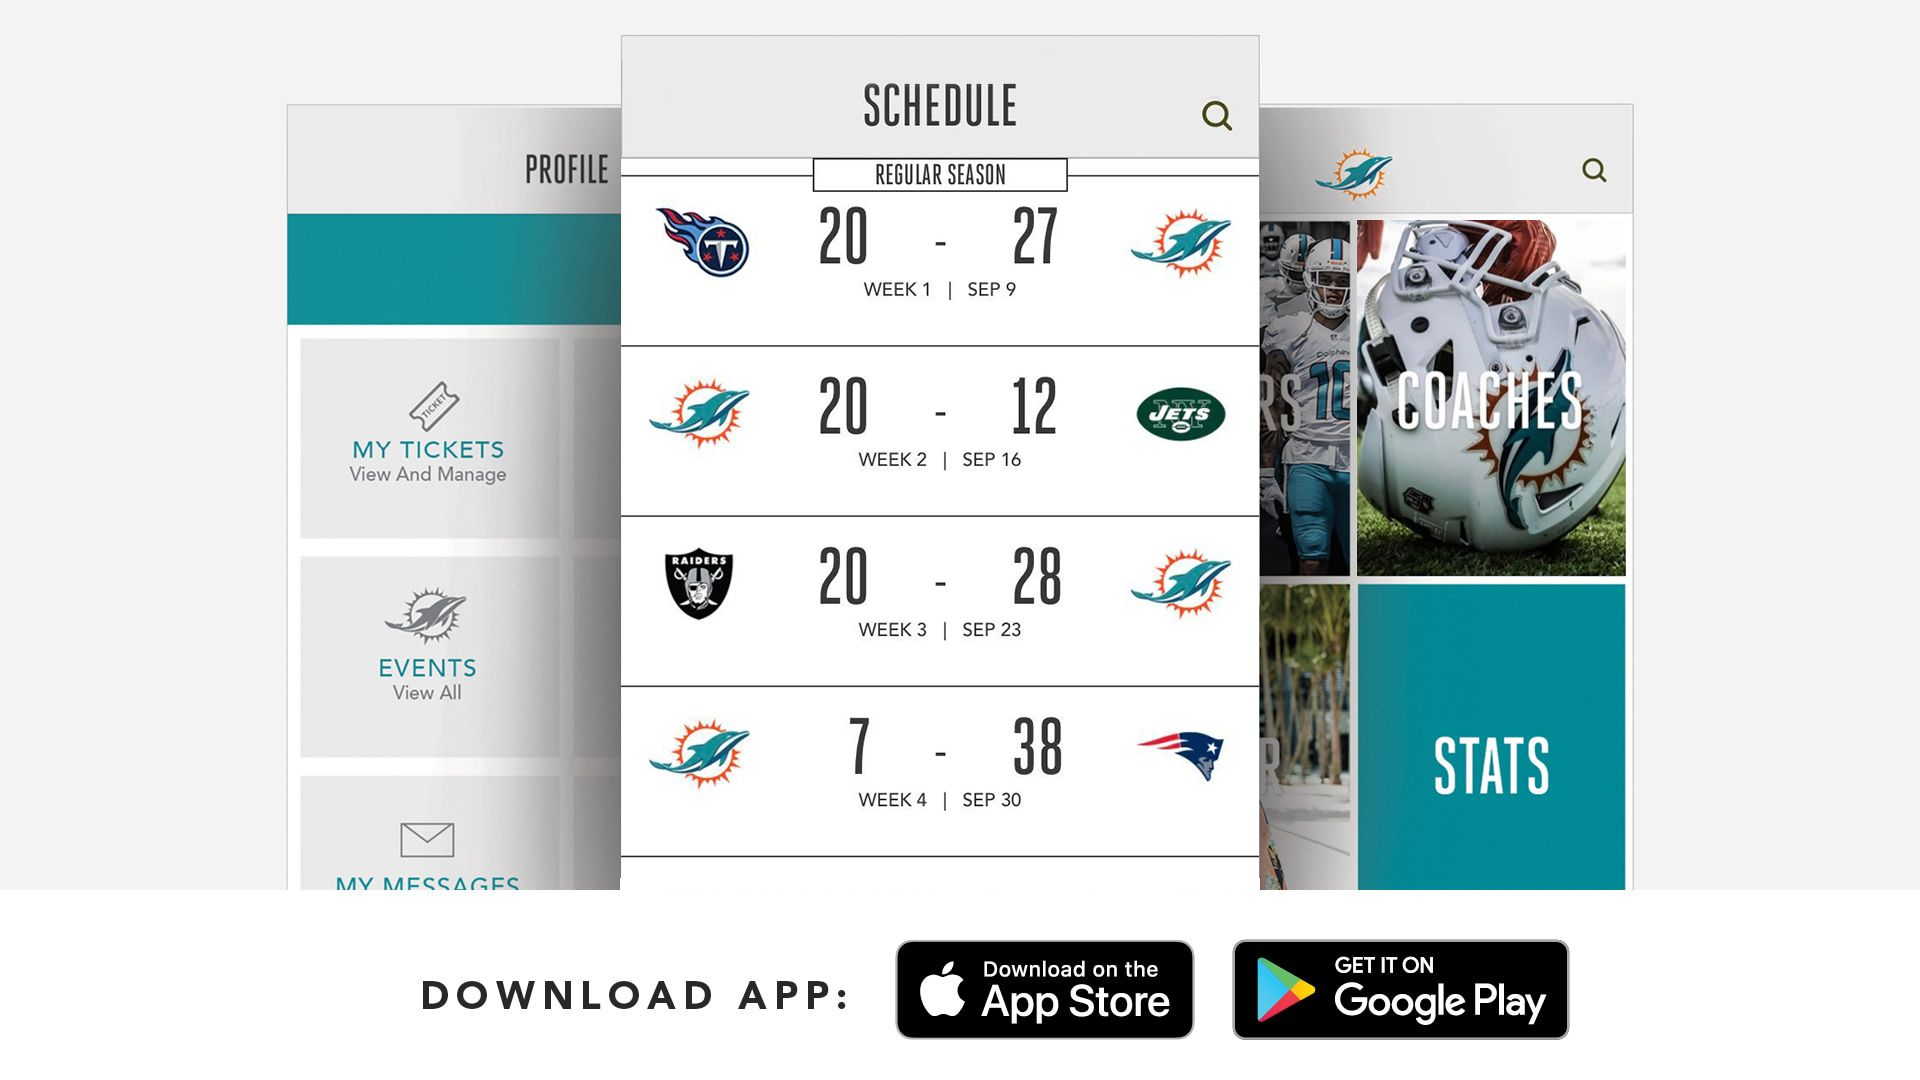 Graphic: Download The Dolphins App - Includes Screenshots of Profile, Schedule and Menus Pages